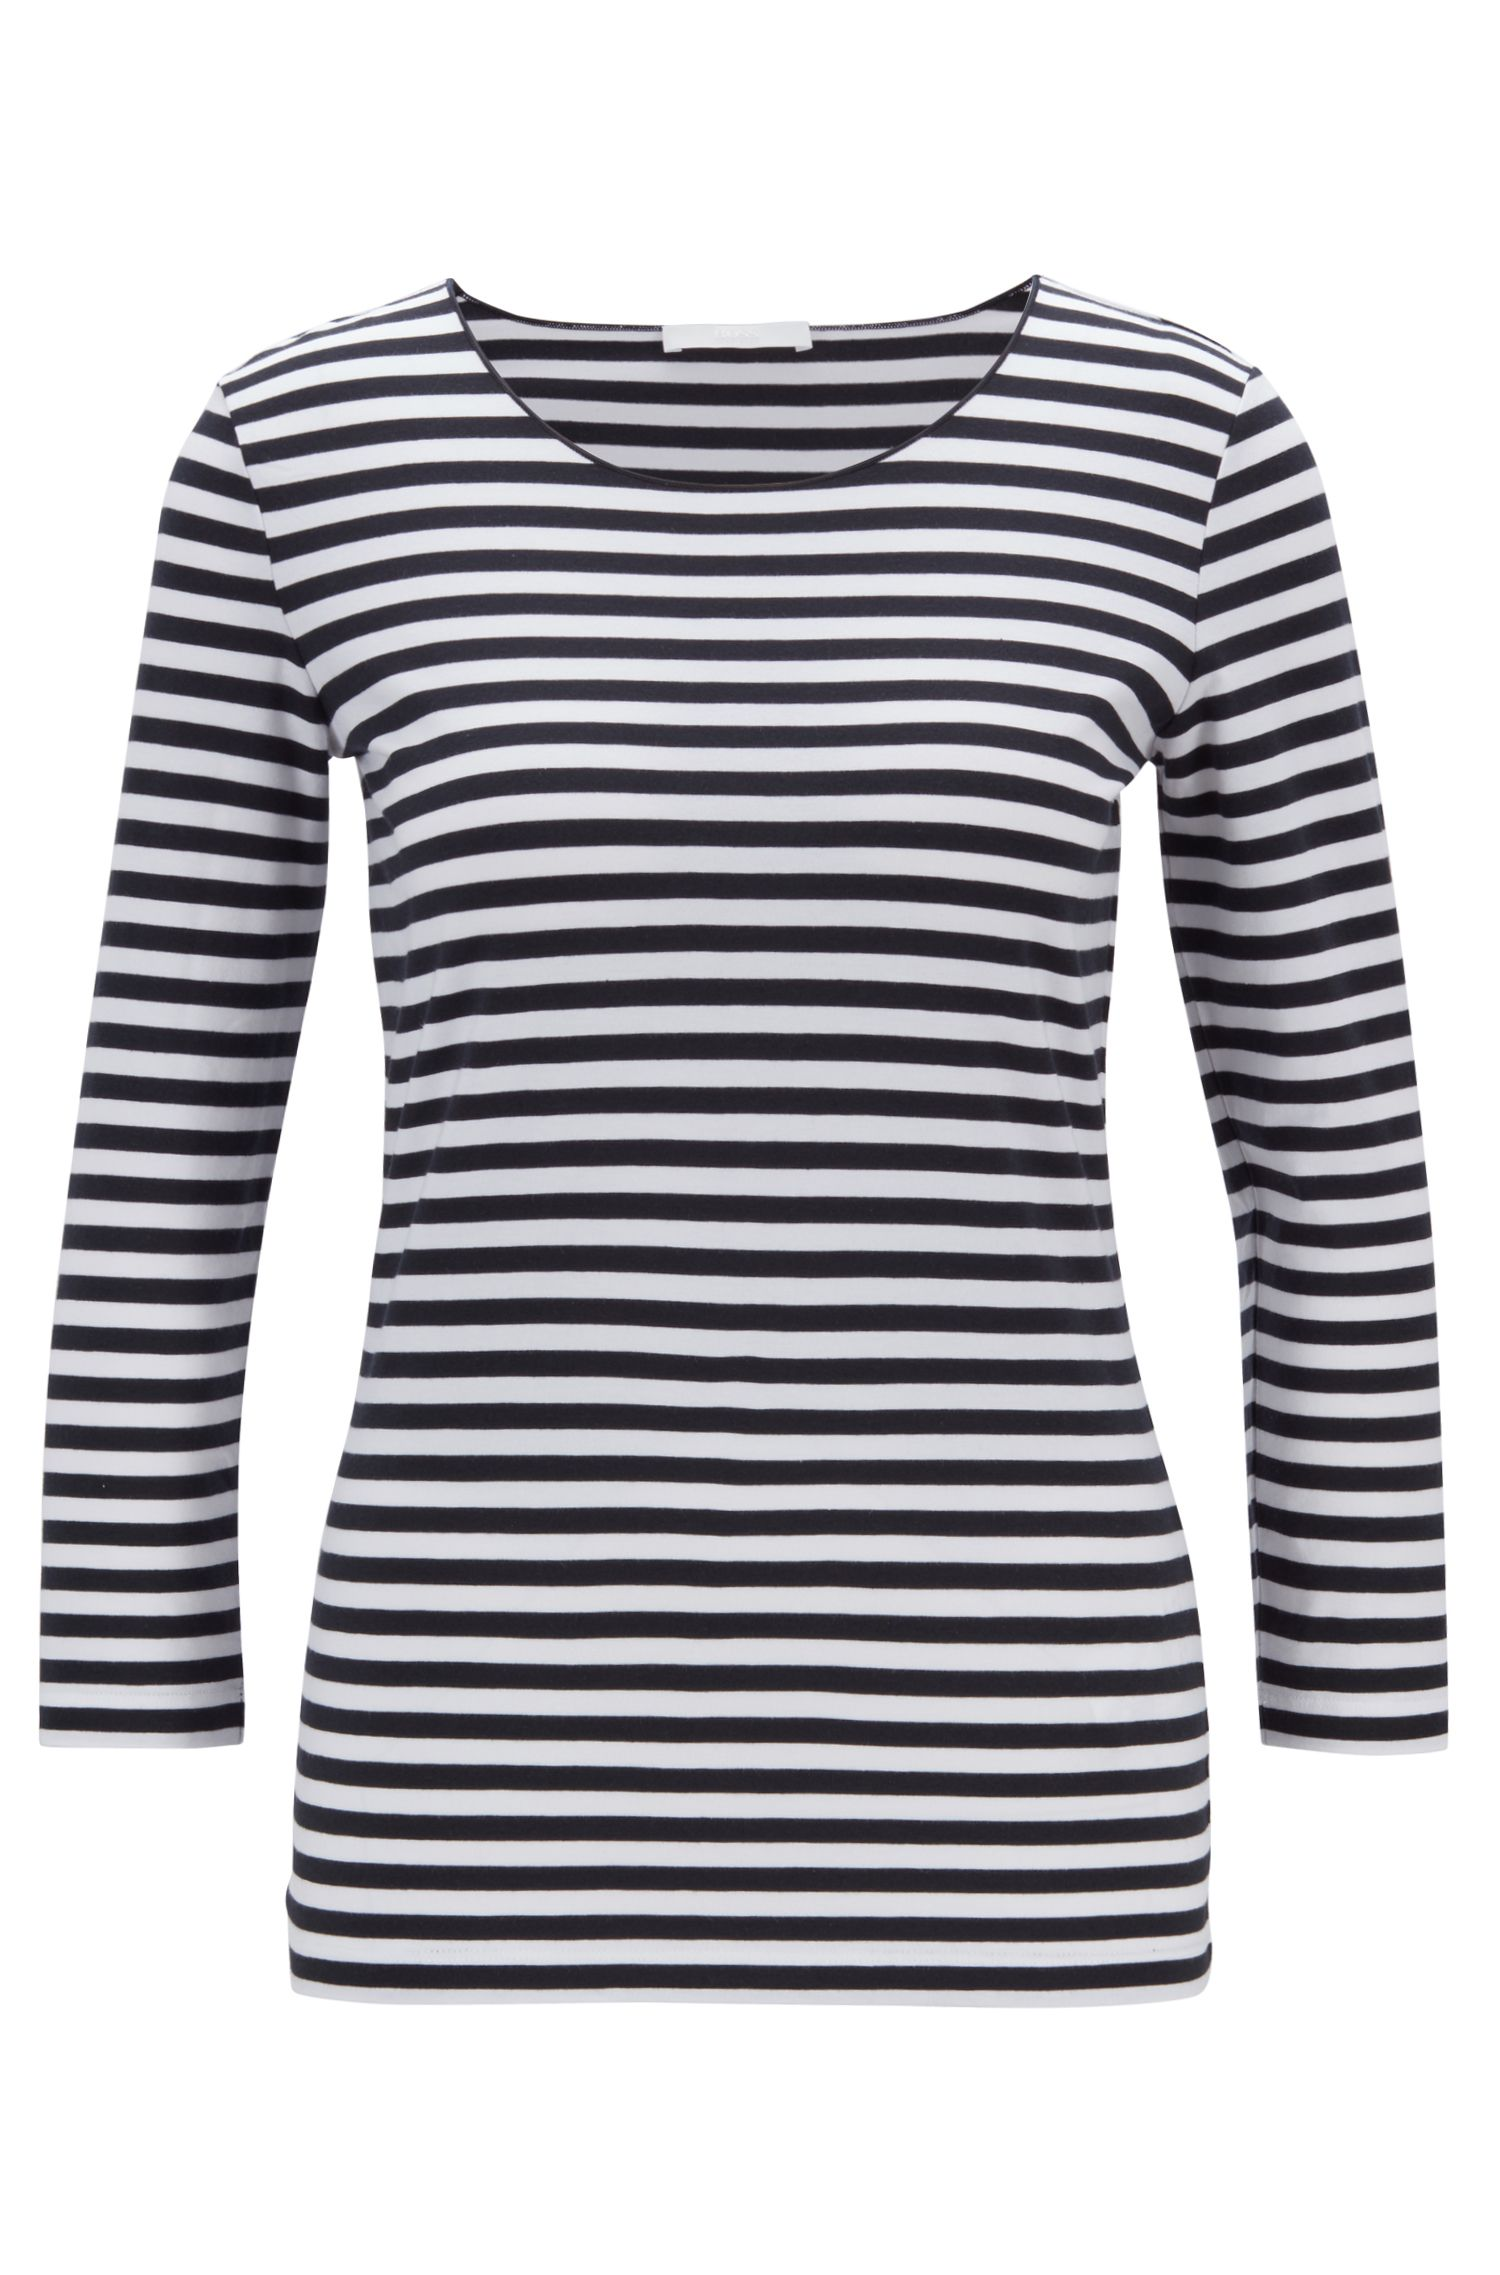 Breton-striped top in stretch jersey with modal, Patterned